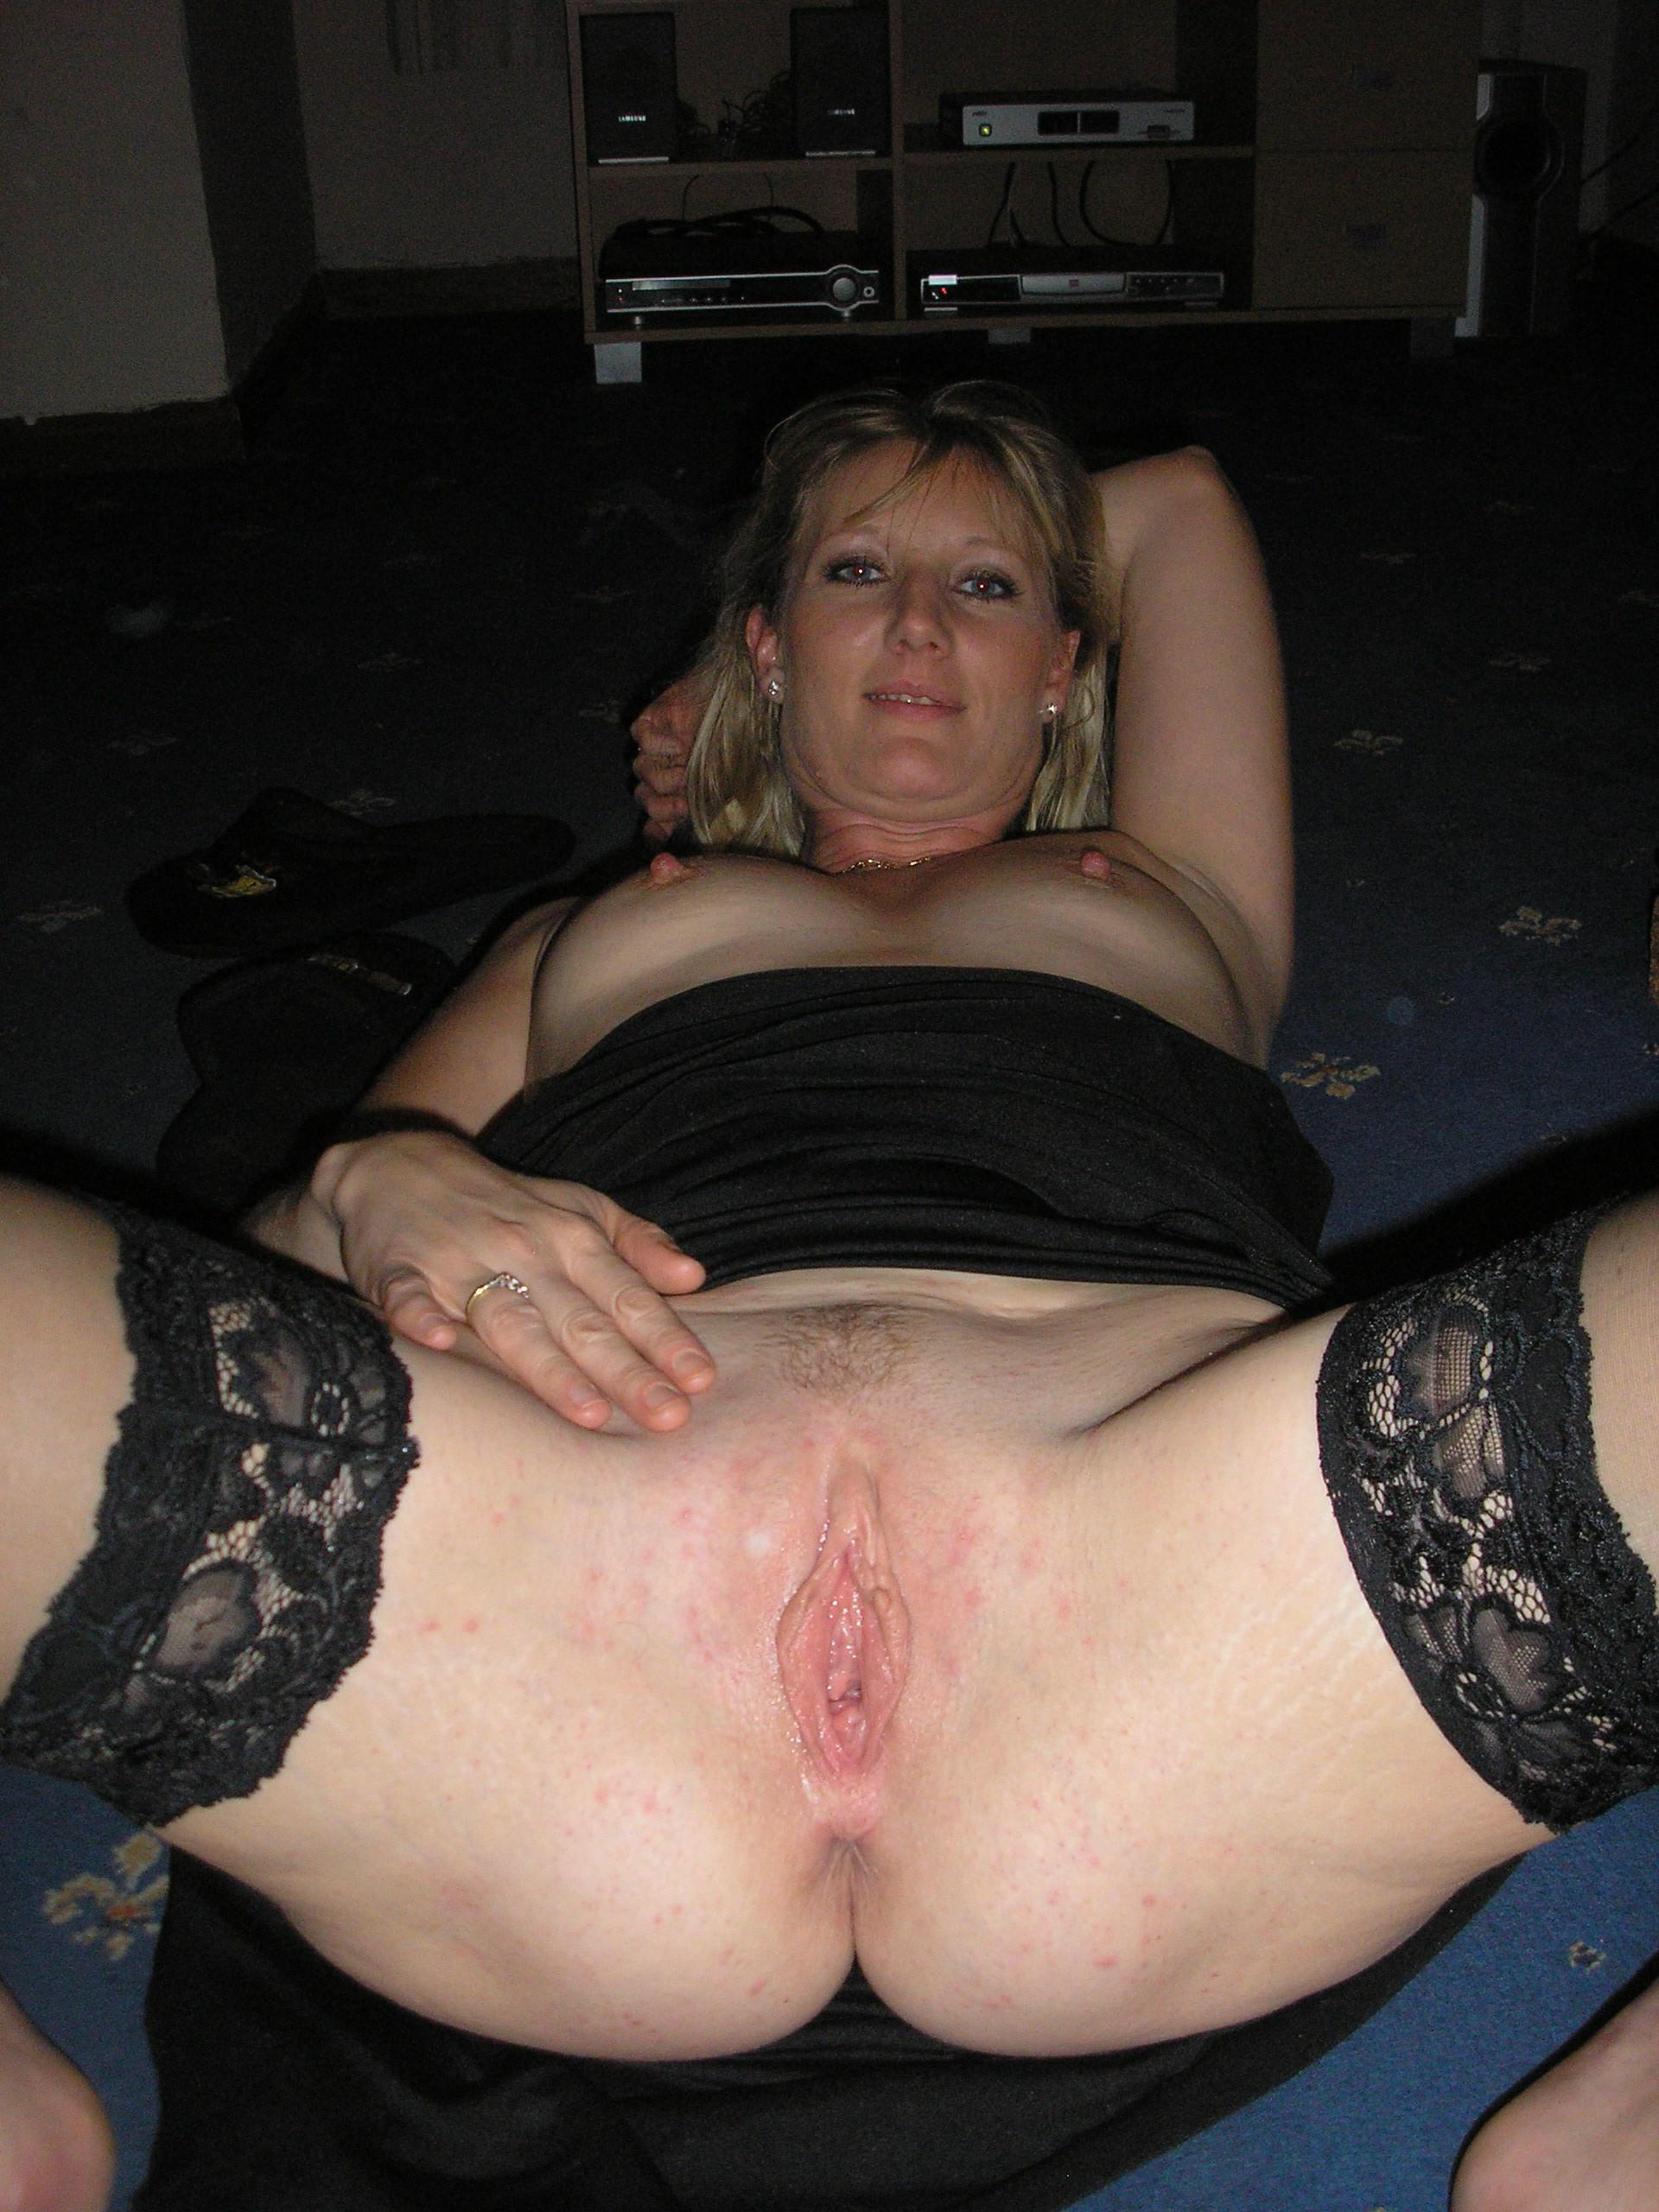 Cute mature showing off pussy and anus up close on pic. Blonde milf in stockings stripping off her lingerie